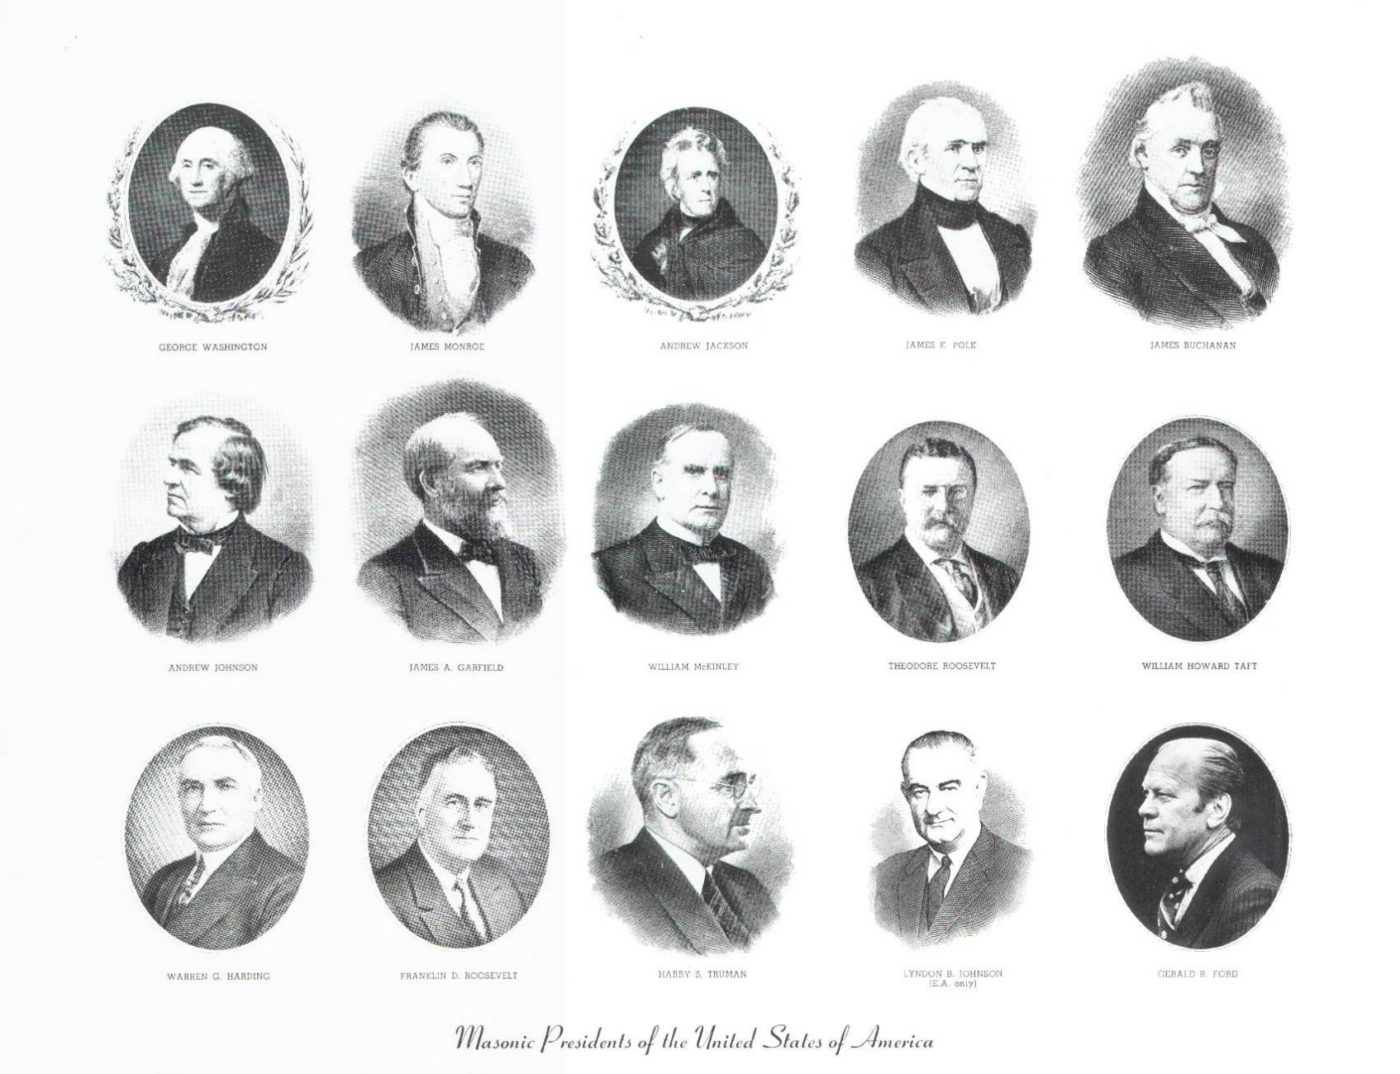 The 15 US Presidents Who Were Also Members of the Freemason Society